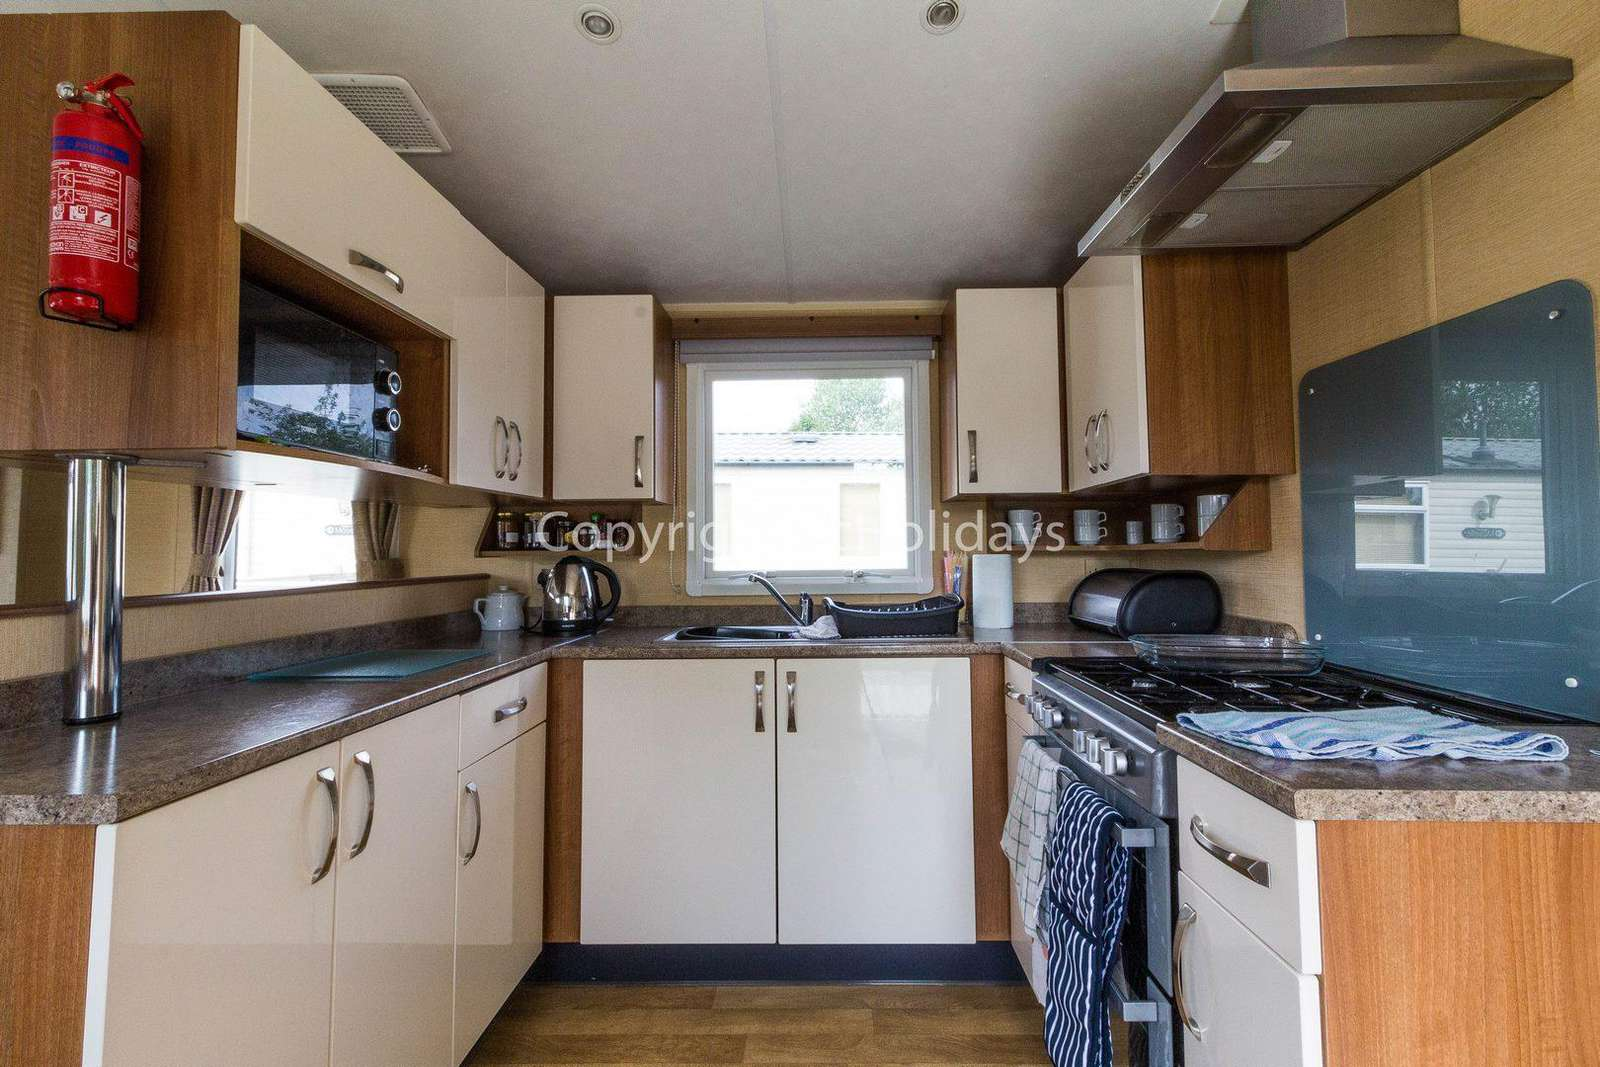 Coastal accommodation is Lincolnshire